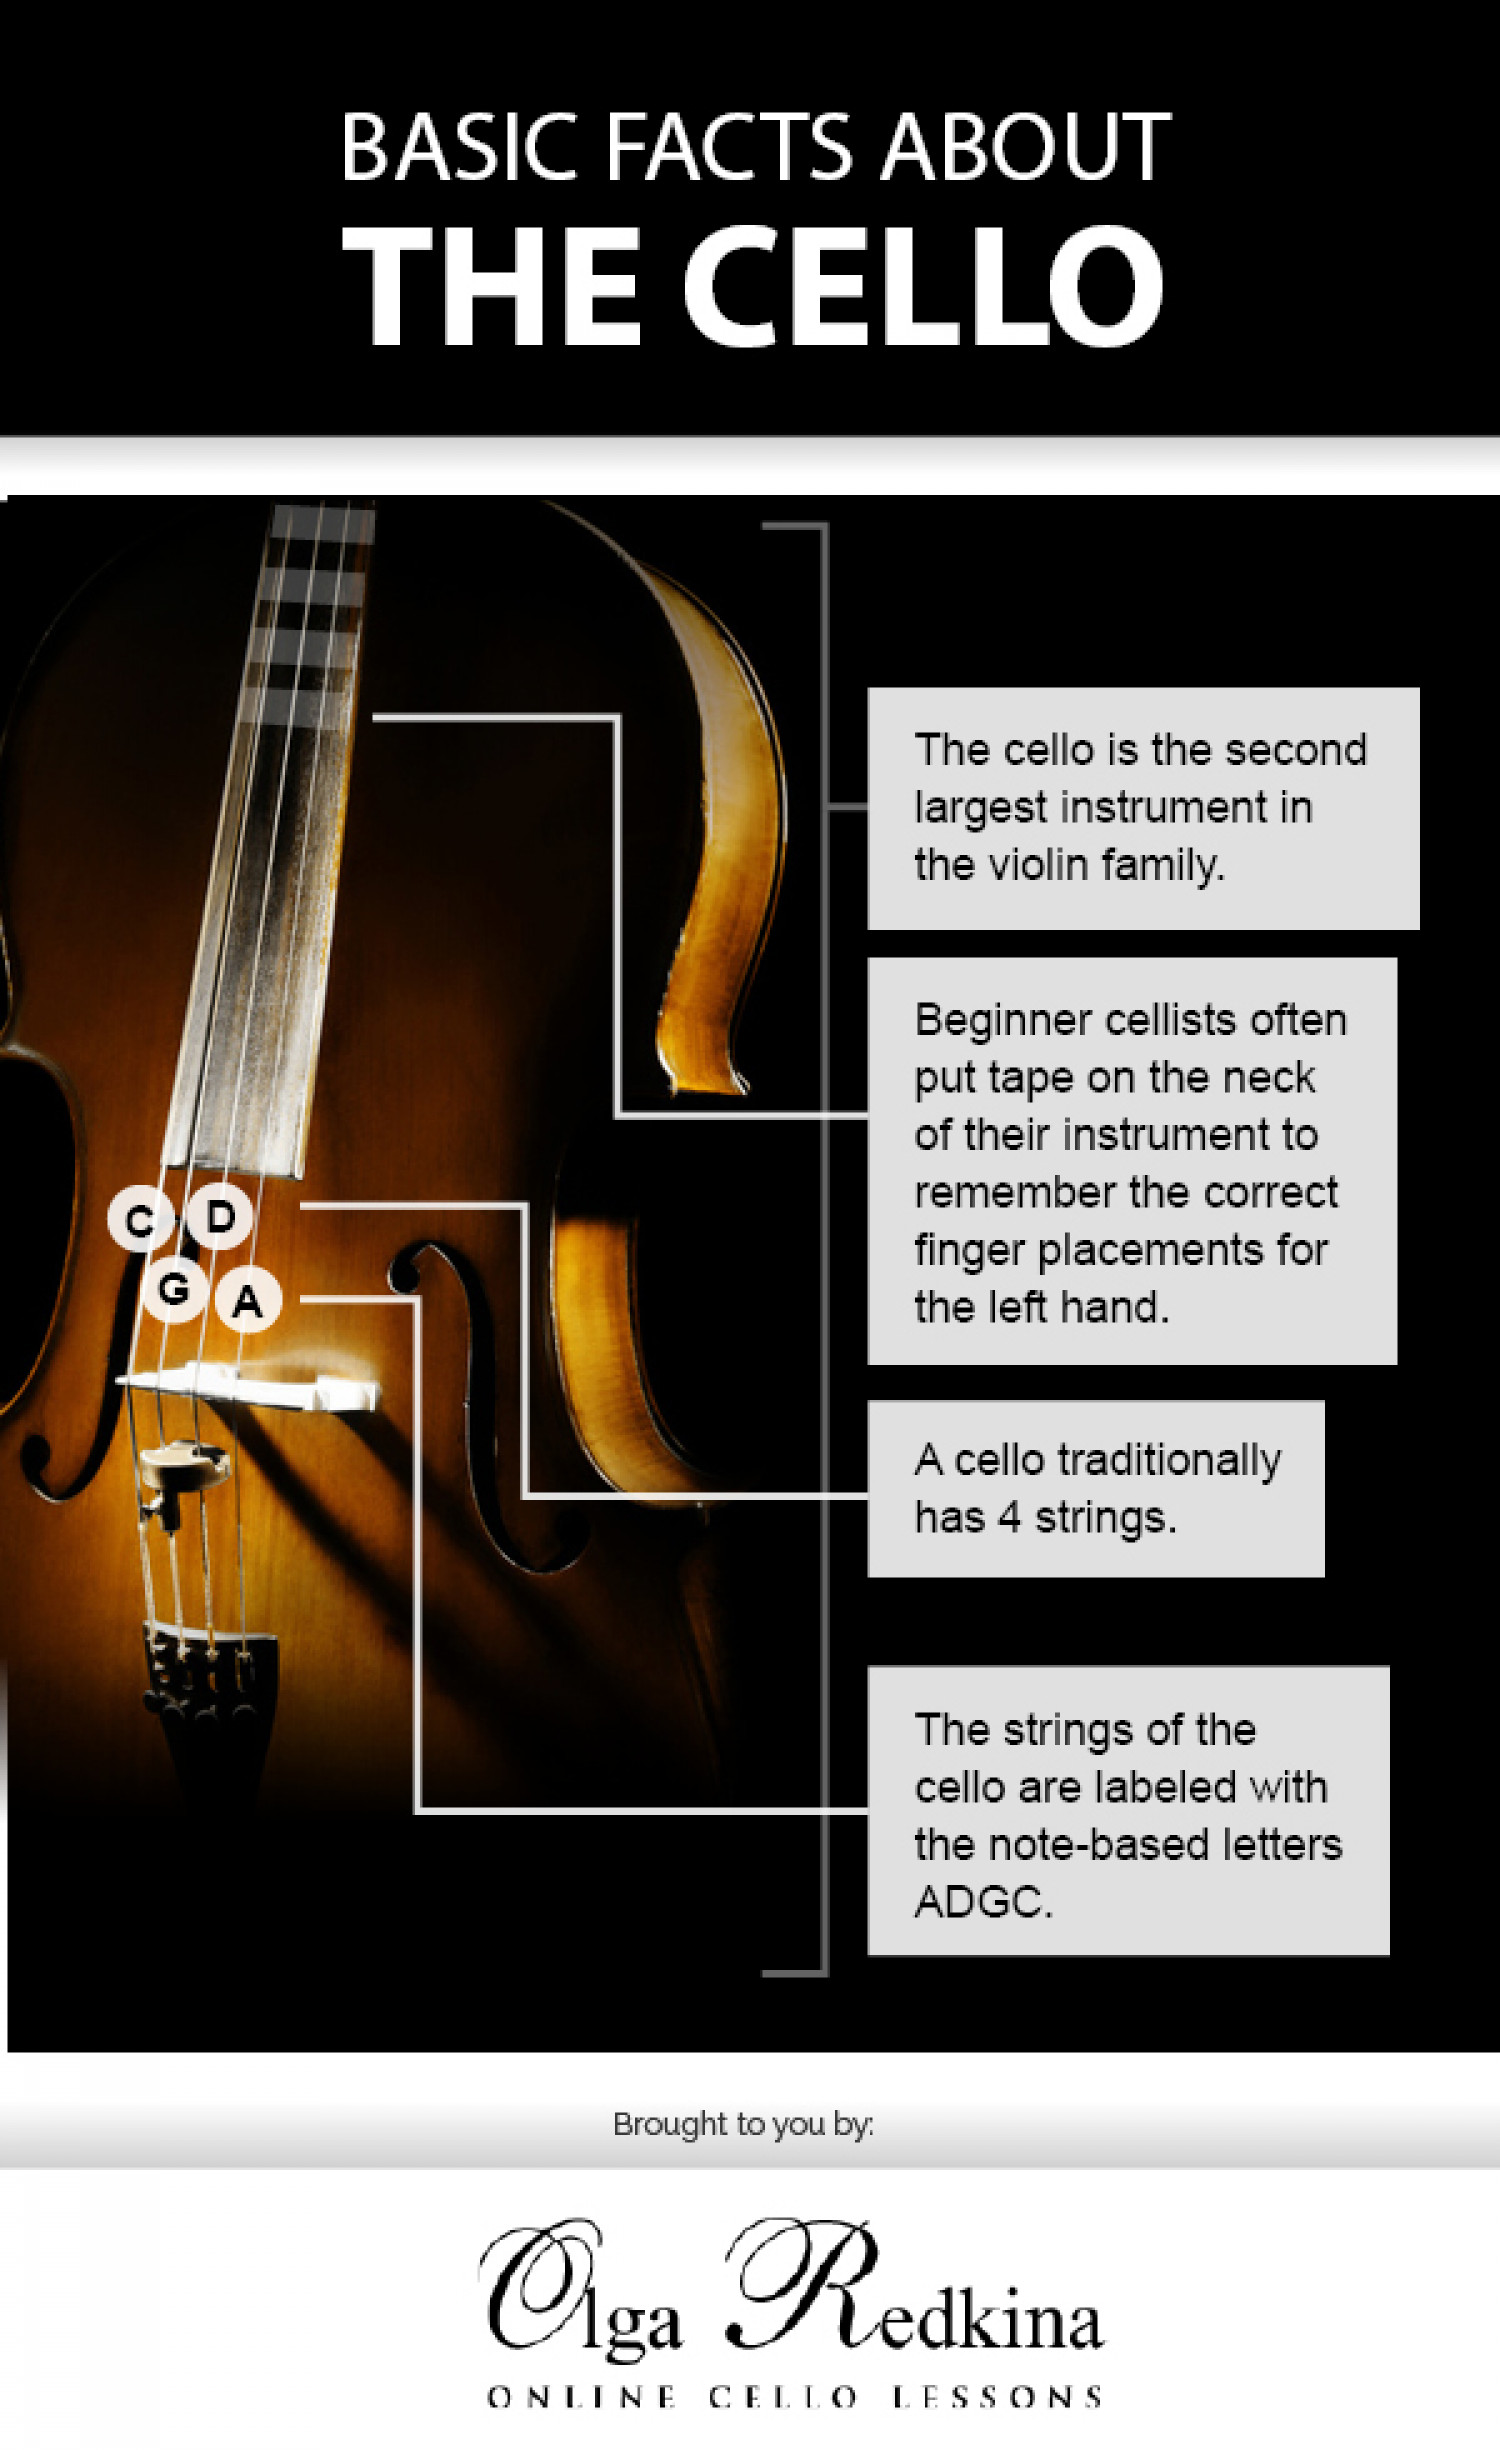 Basic Facts About the Cello Infographic